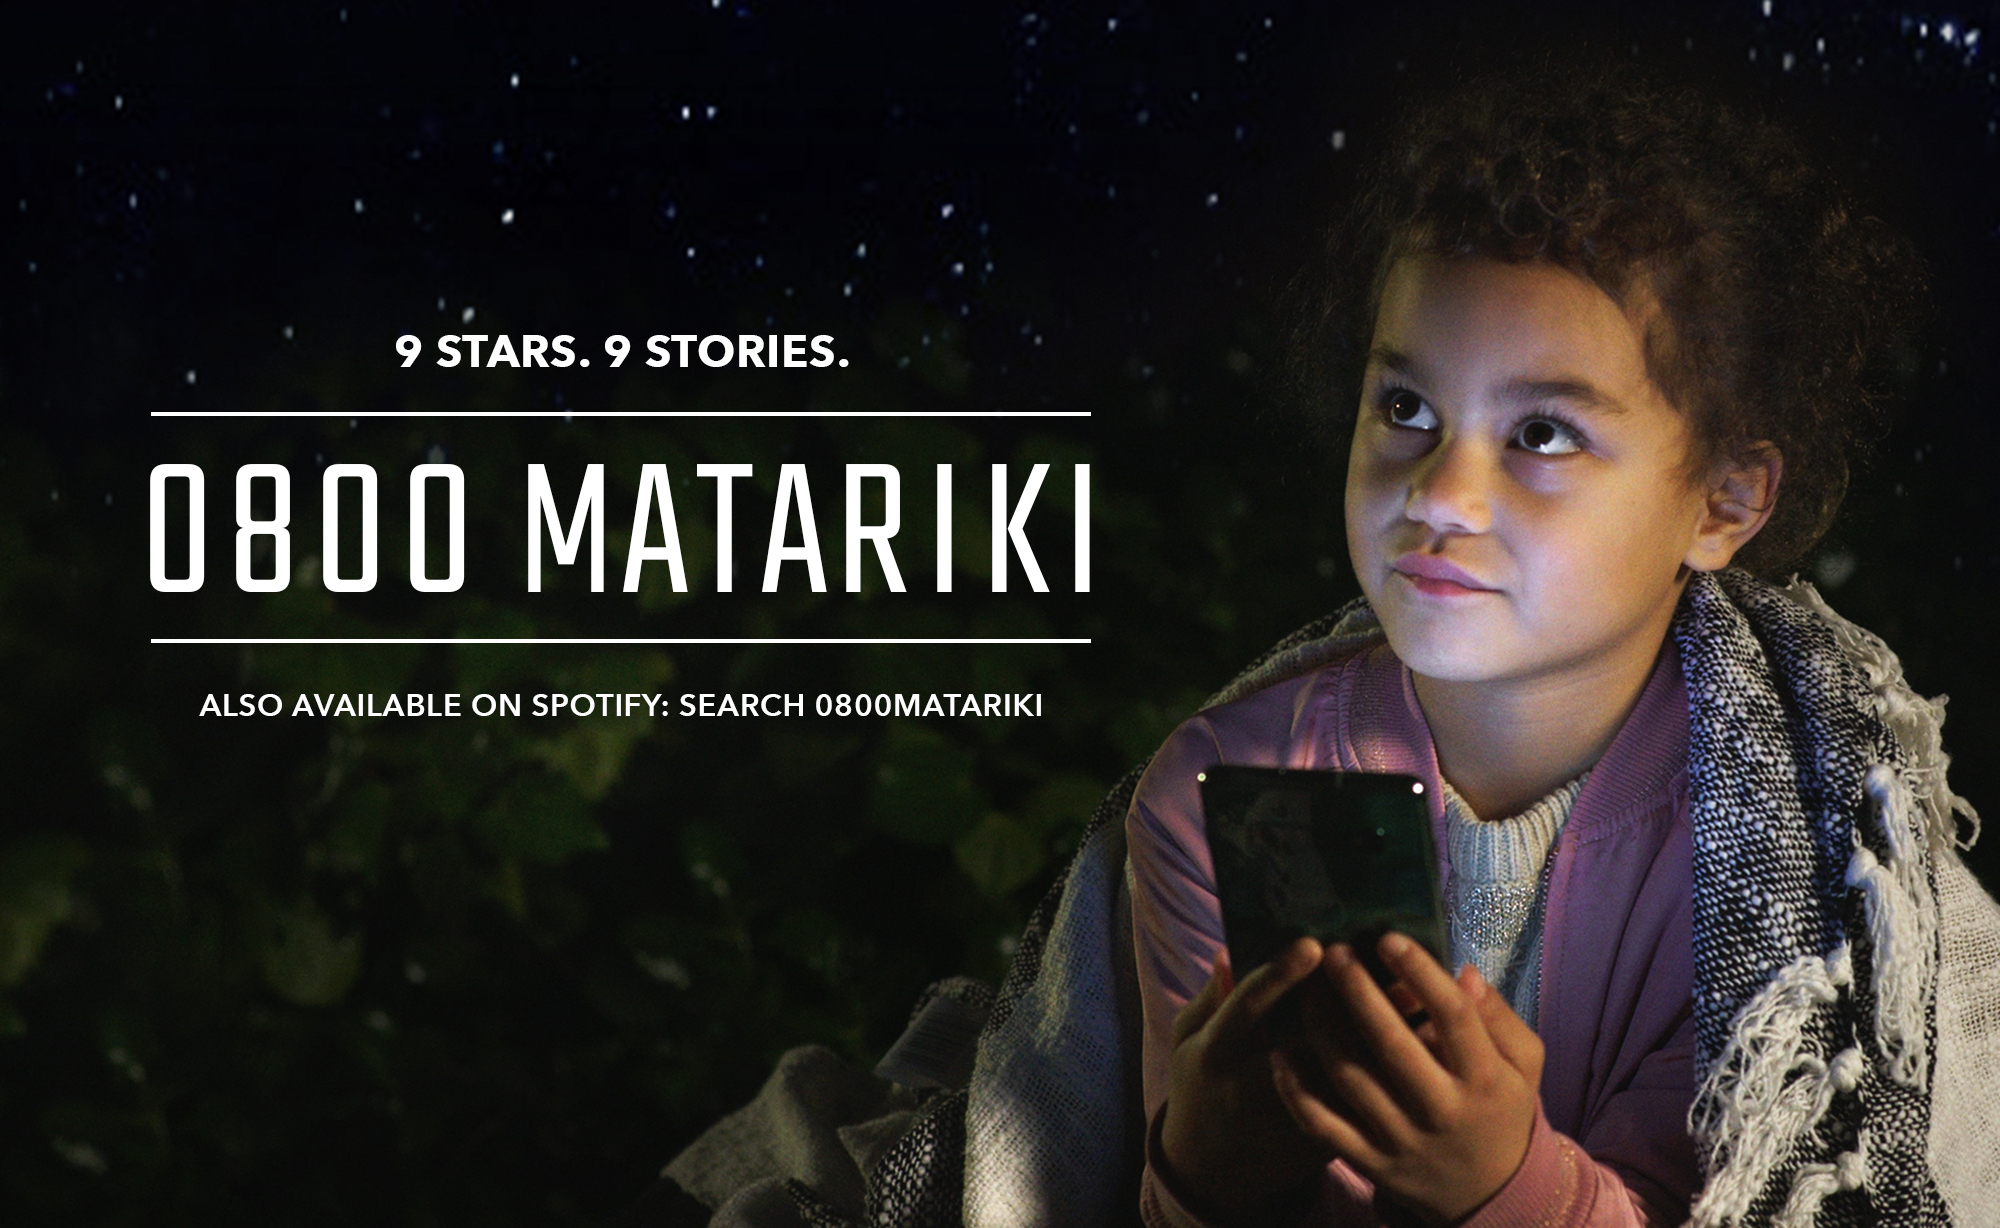 Spark brings the stories of Māori New Year to NZ with launch of 0800 MATARIKI via Colenso BBDO